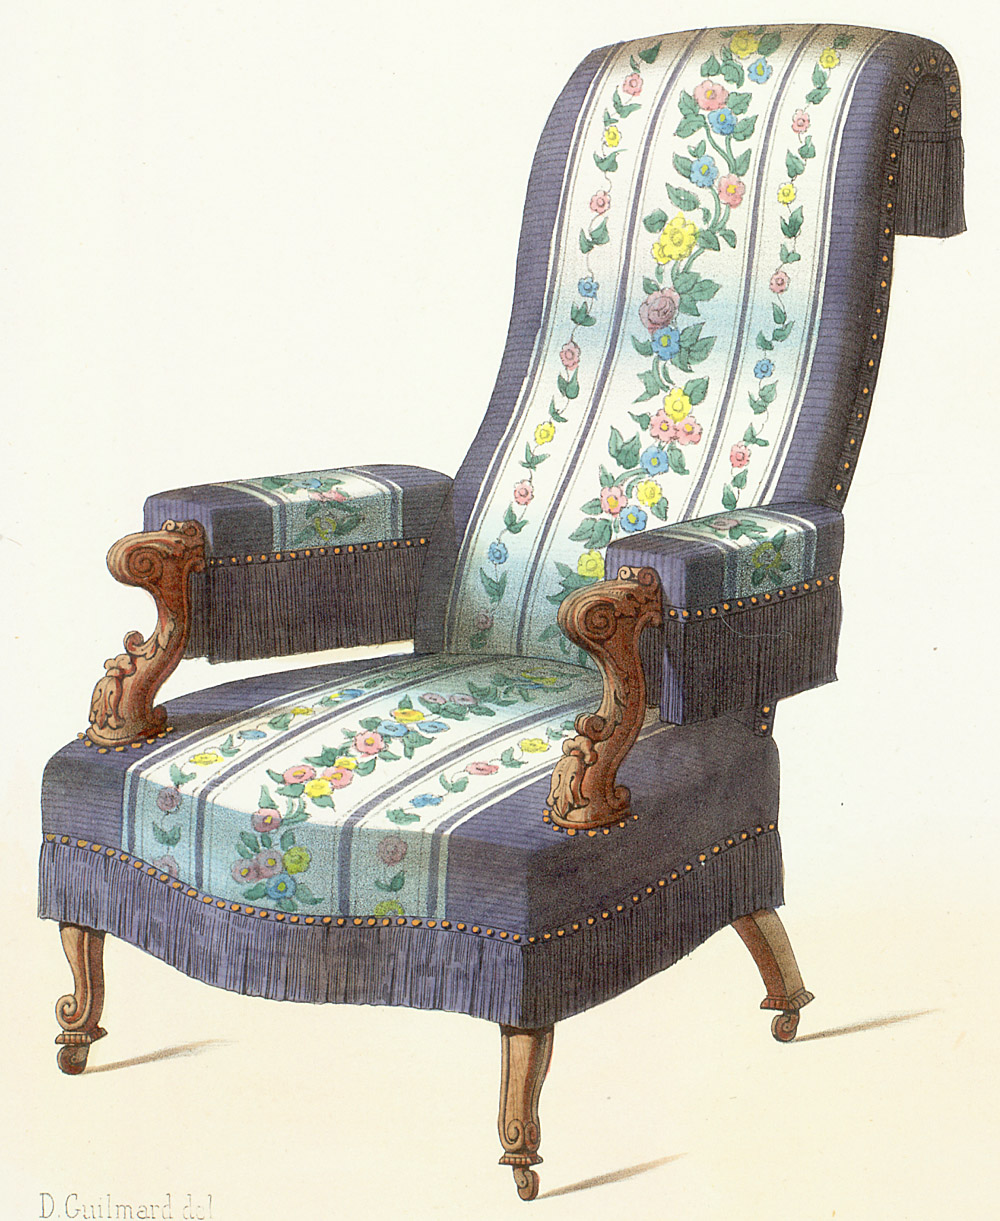 Chairs,  Image number:SIL12-2-228b